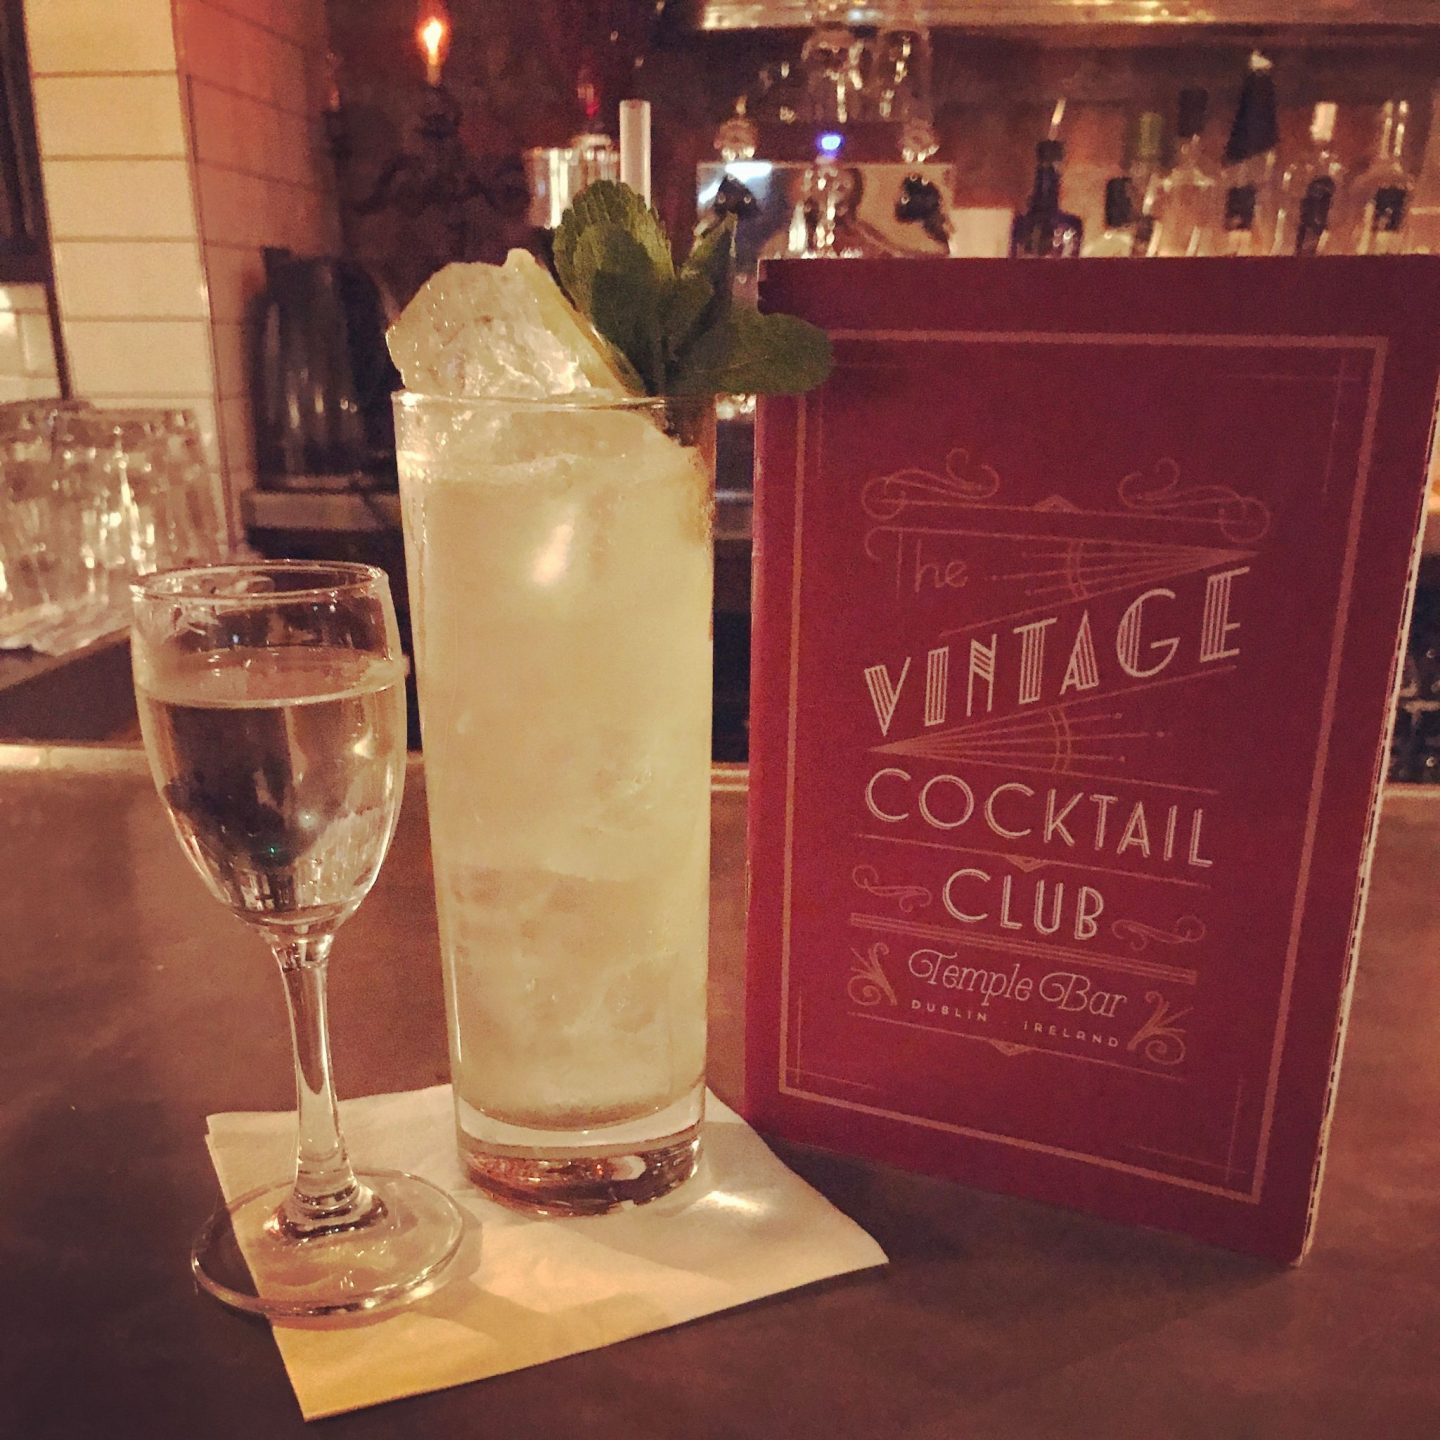 The Vintage Cocktail club – Temple Bar's little secret